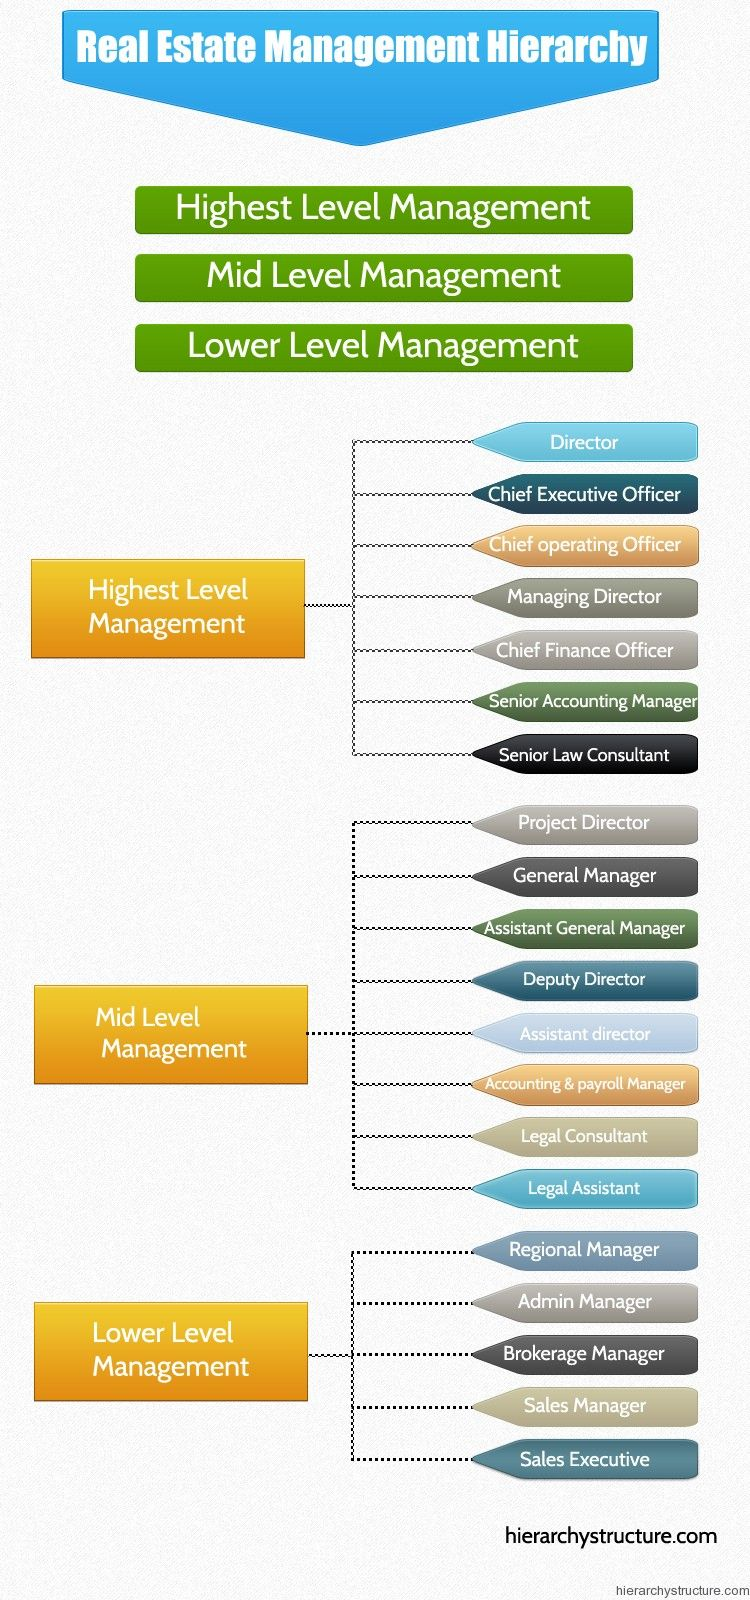 Real Estate Management Hierarchy Real Estate Management Estate Management Organizational Management